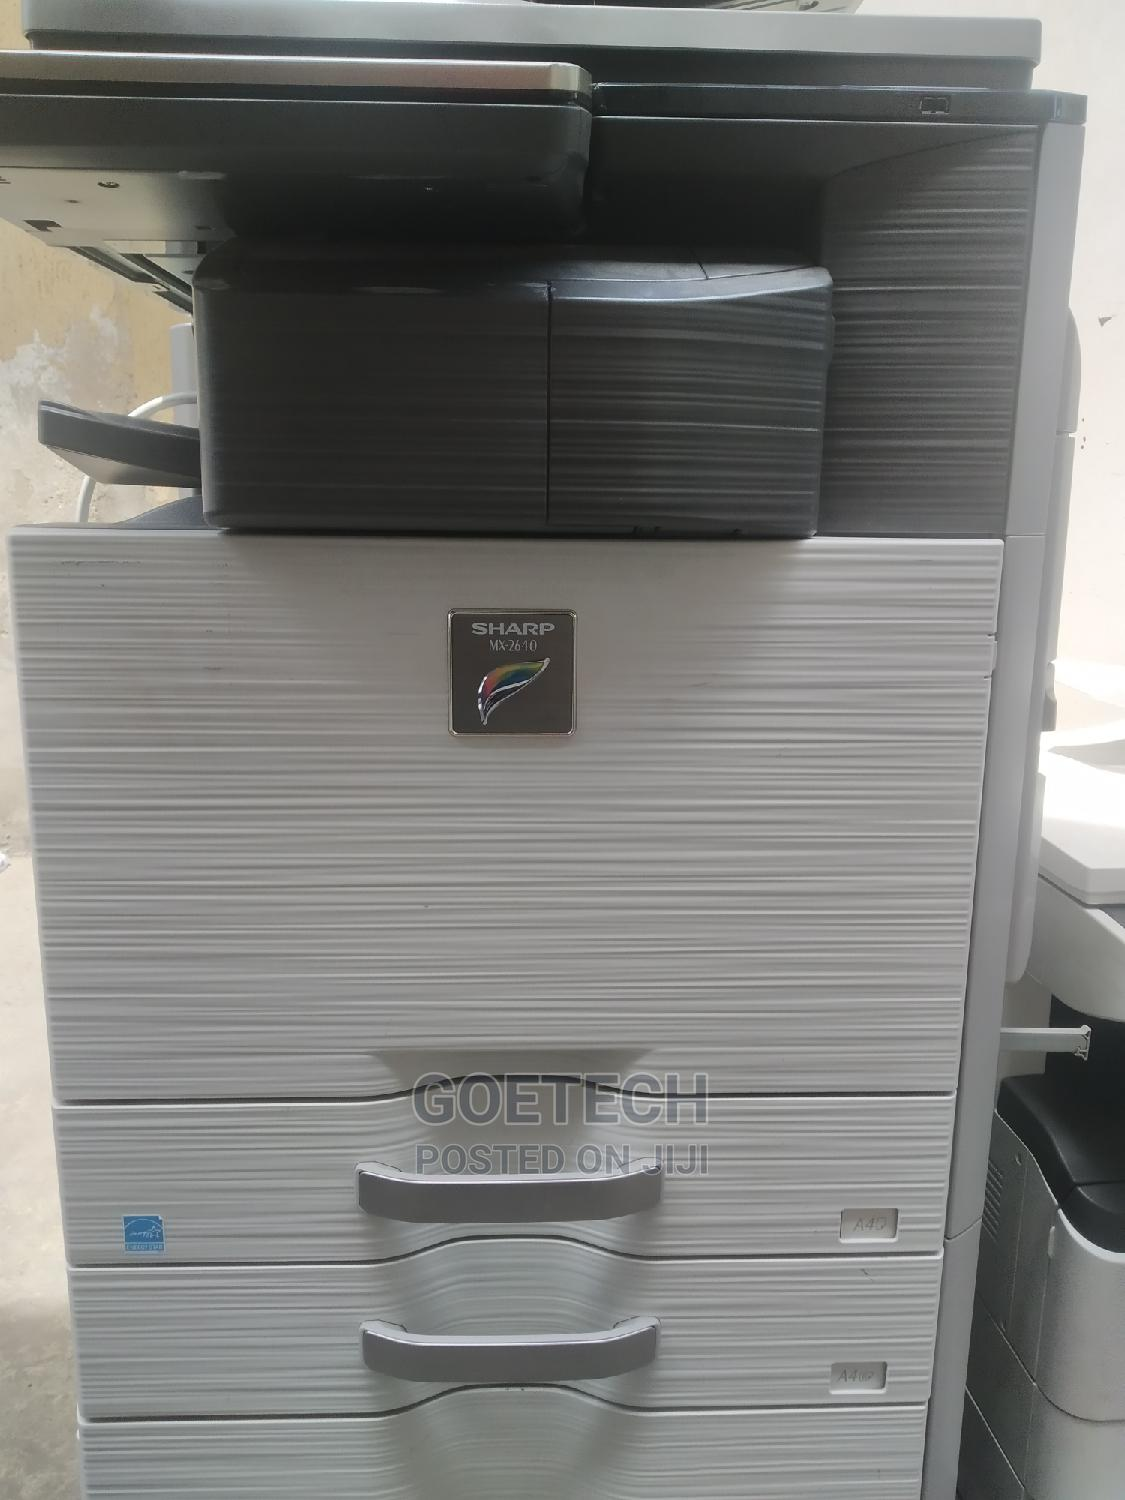 Sharp MX - 2640   Printers & Scanners for sale in Surulere, Lagos State, Nigeria